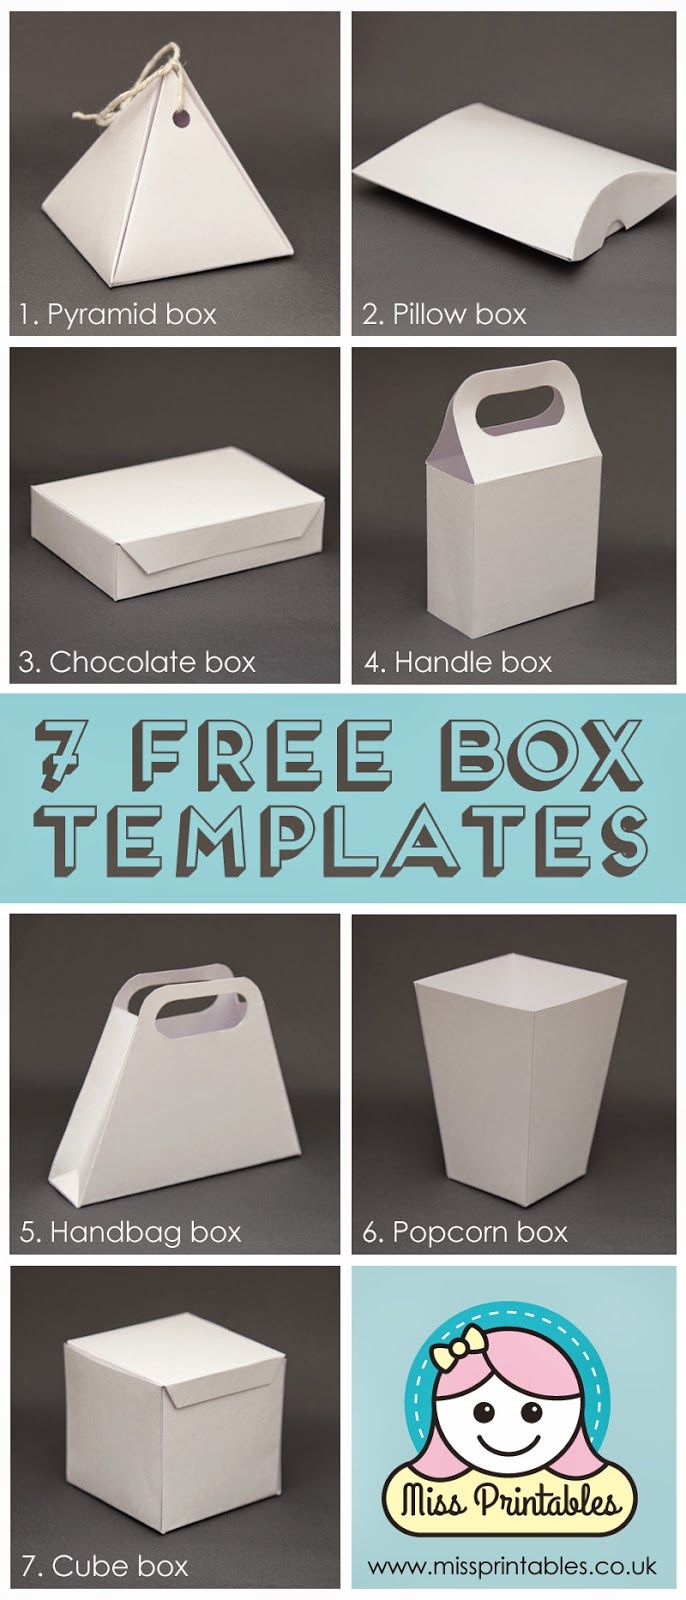 Blank box templates - freebie! have fun making these boxes and decorating them yourselves with this free printable file.